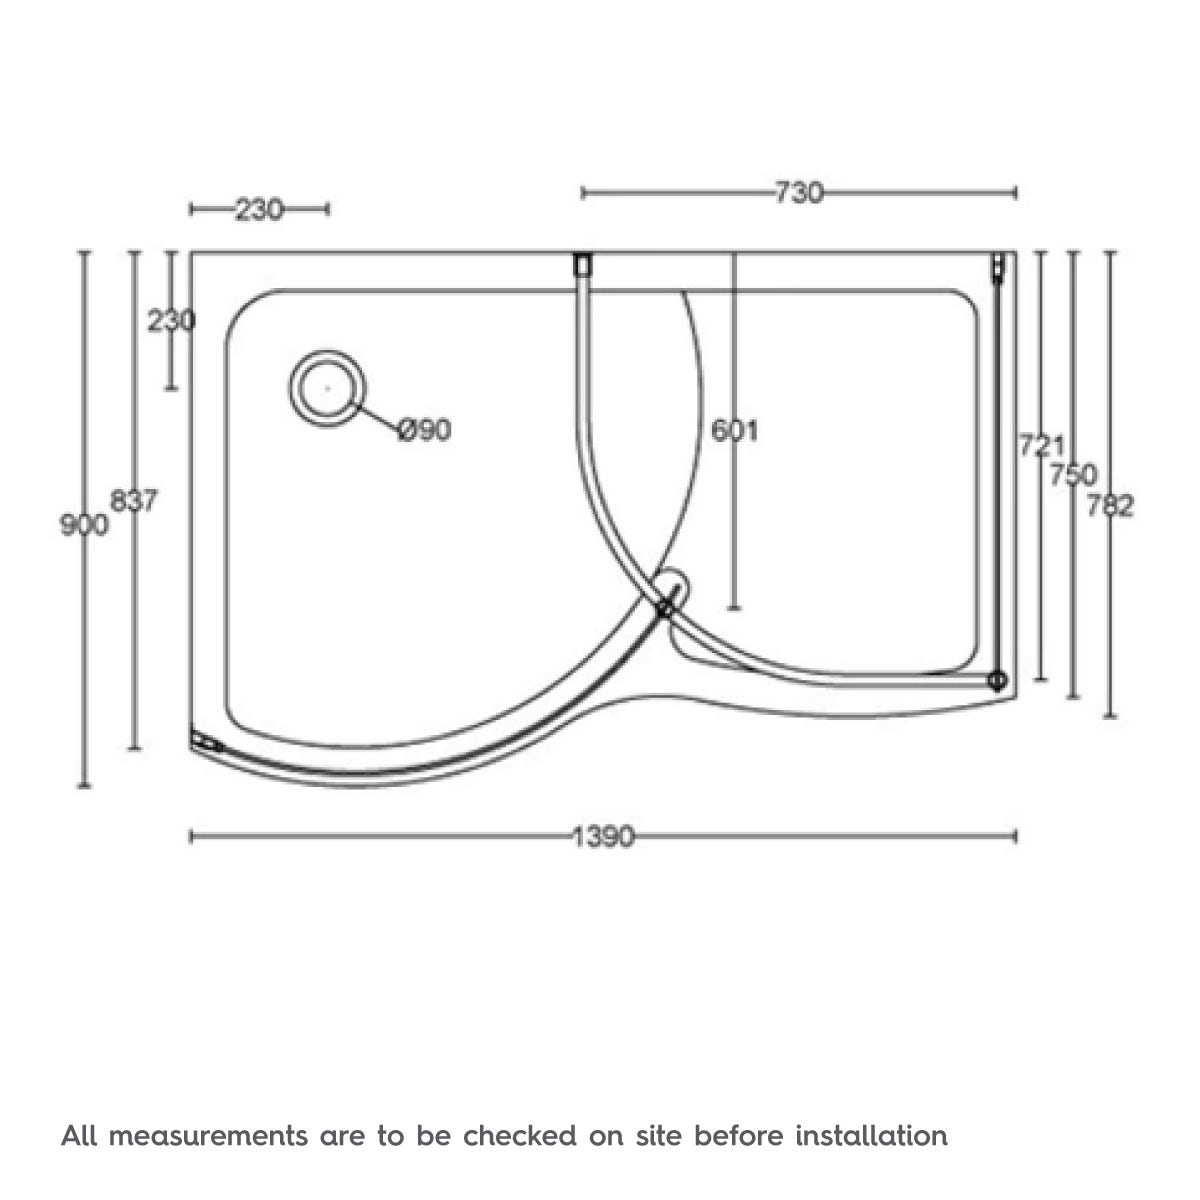 Dimensions for Orchard Curved Walk In Shower Enclosure Tray RH